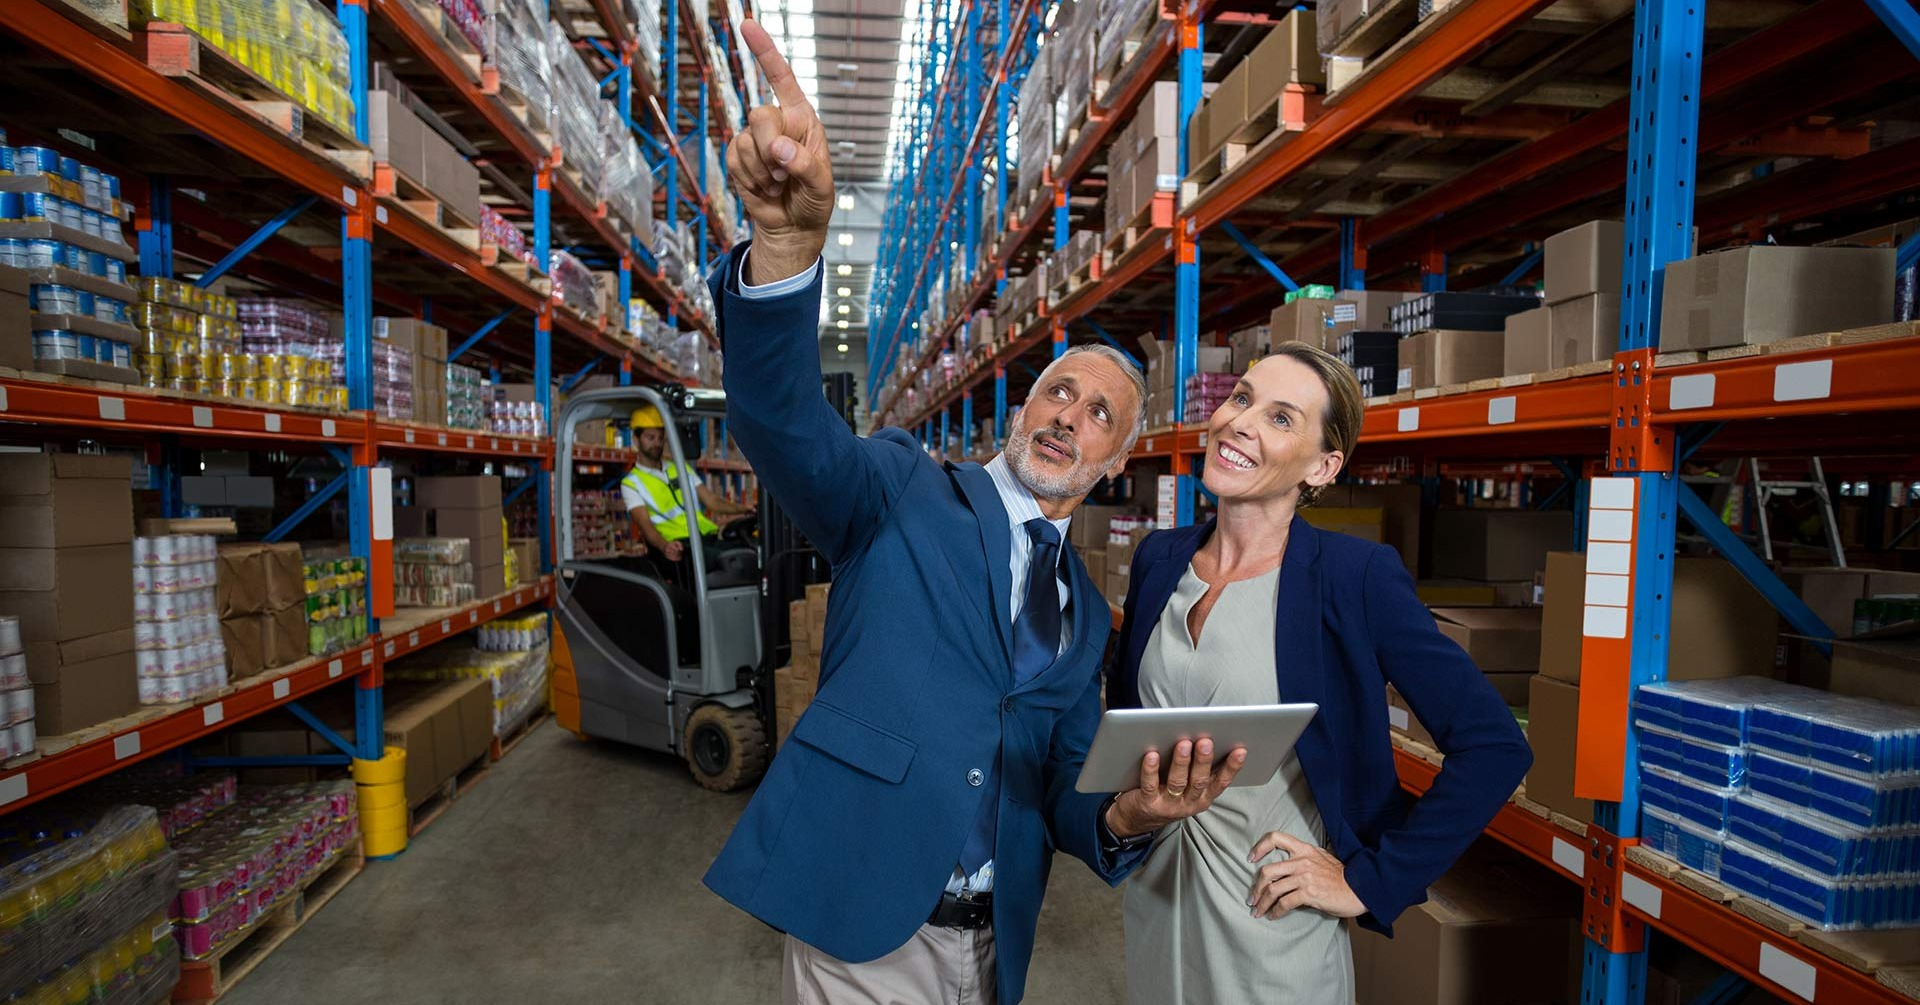 Trends and insights into warehouse and distribution